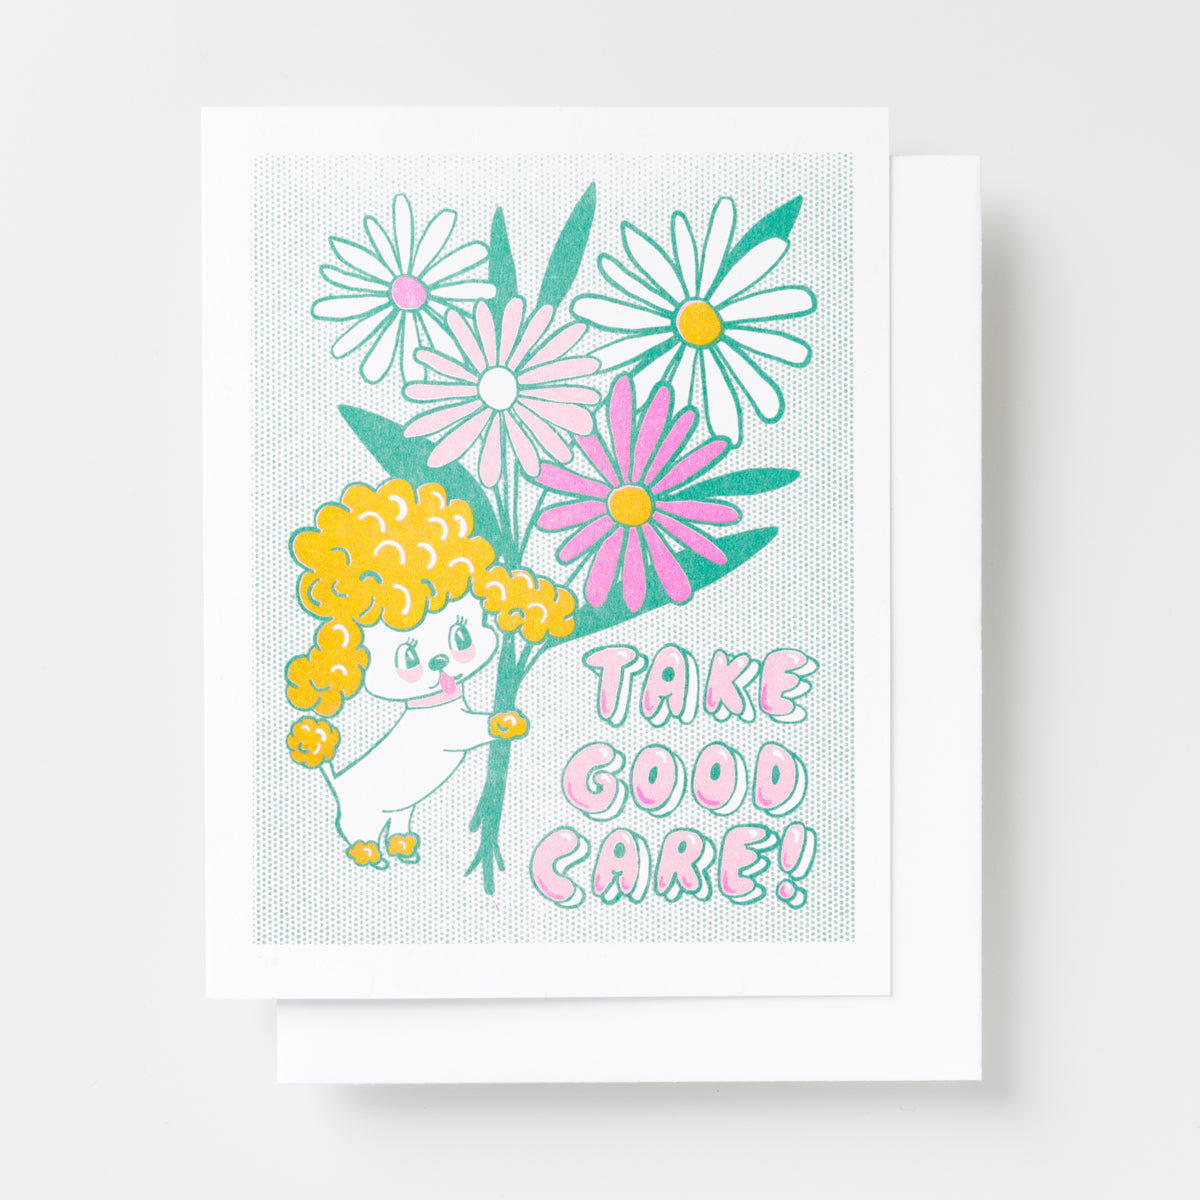 Take Good Card - Risograph Card